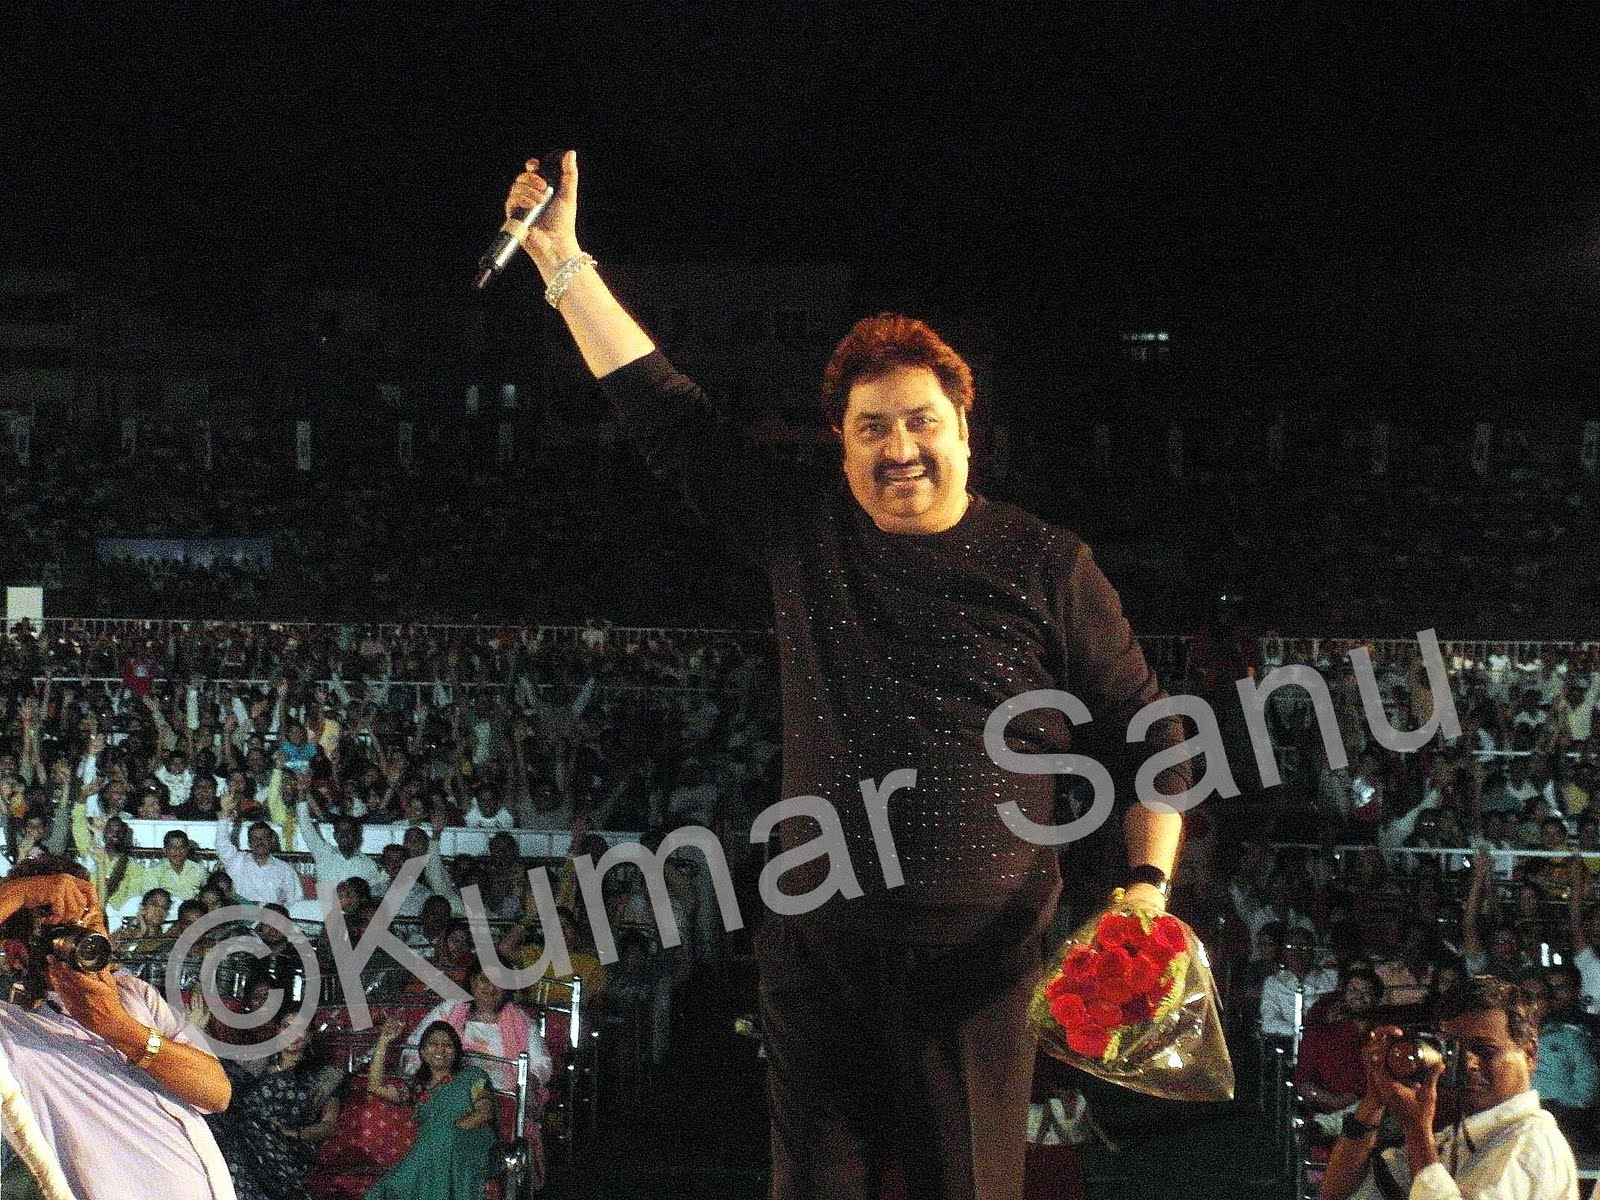 Kumar Sanu Hd Wallpaper Wallpaper Ddlj Wallpaper Free Download